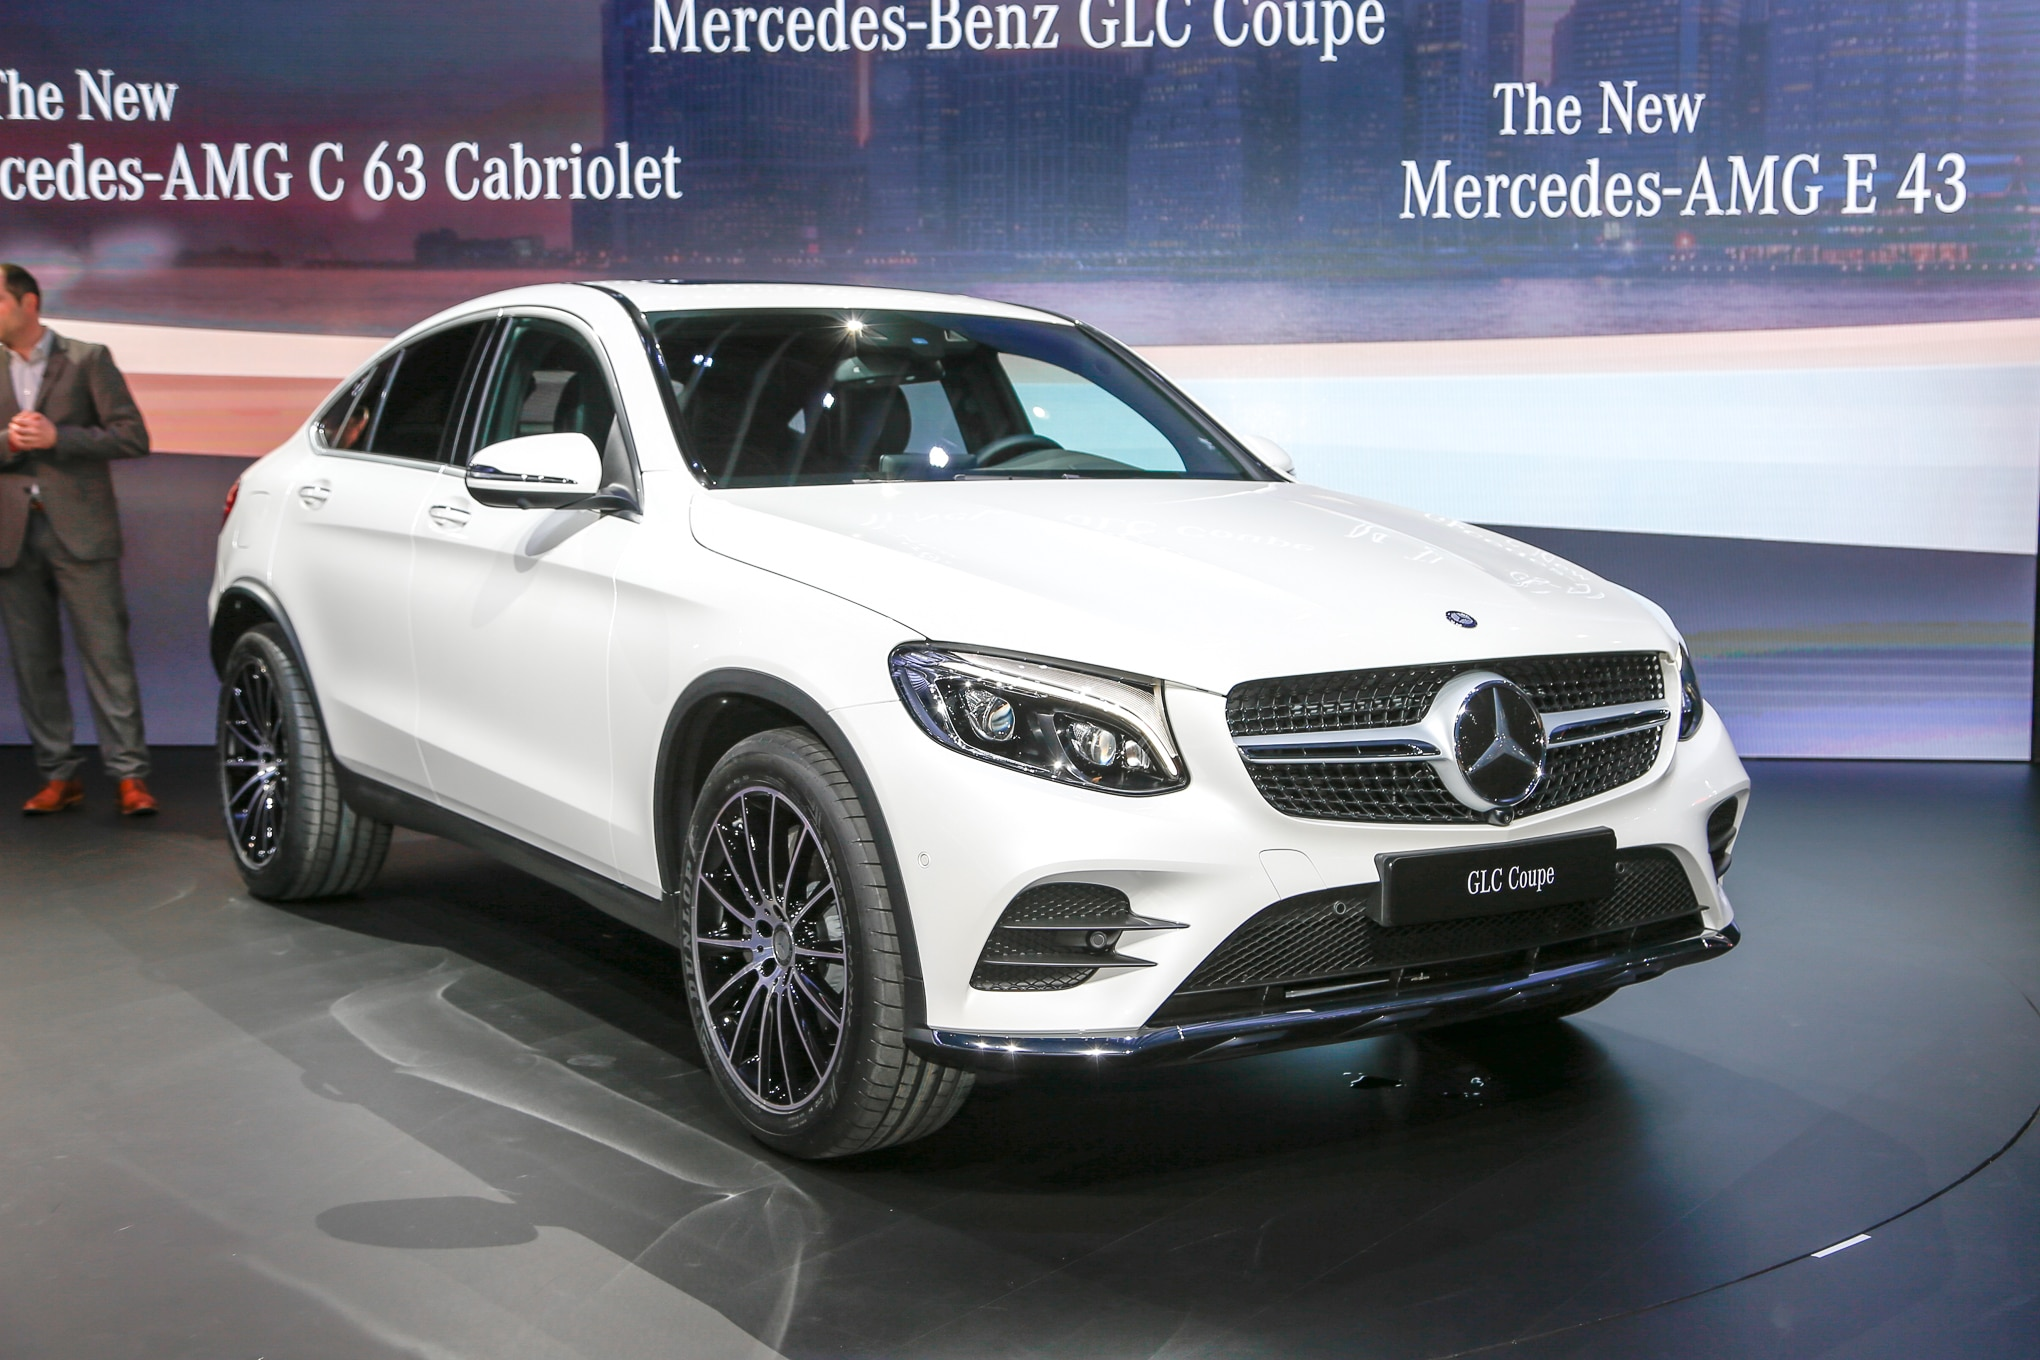 2017 mercedes benz glc coupe debuts in new york automobile magazine. Black Bedroom Furniture Sets. Home Design Ideas